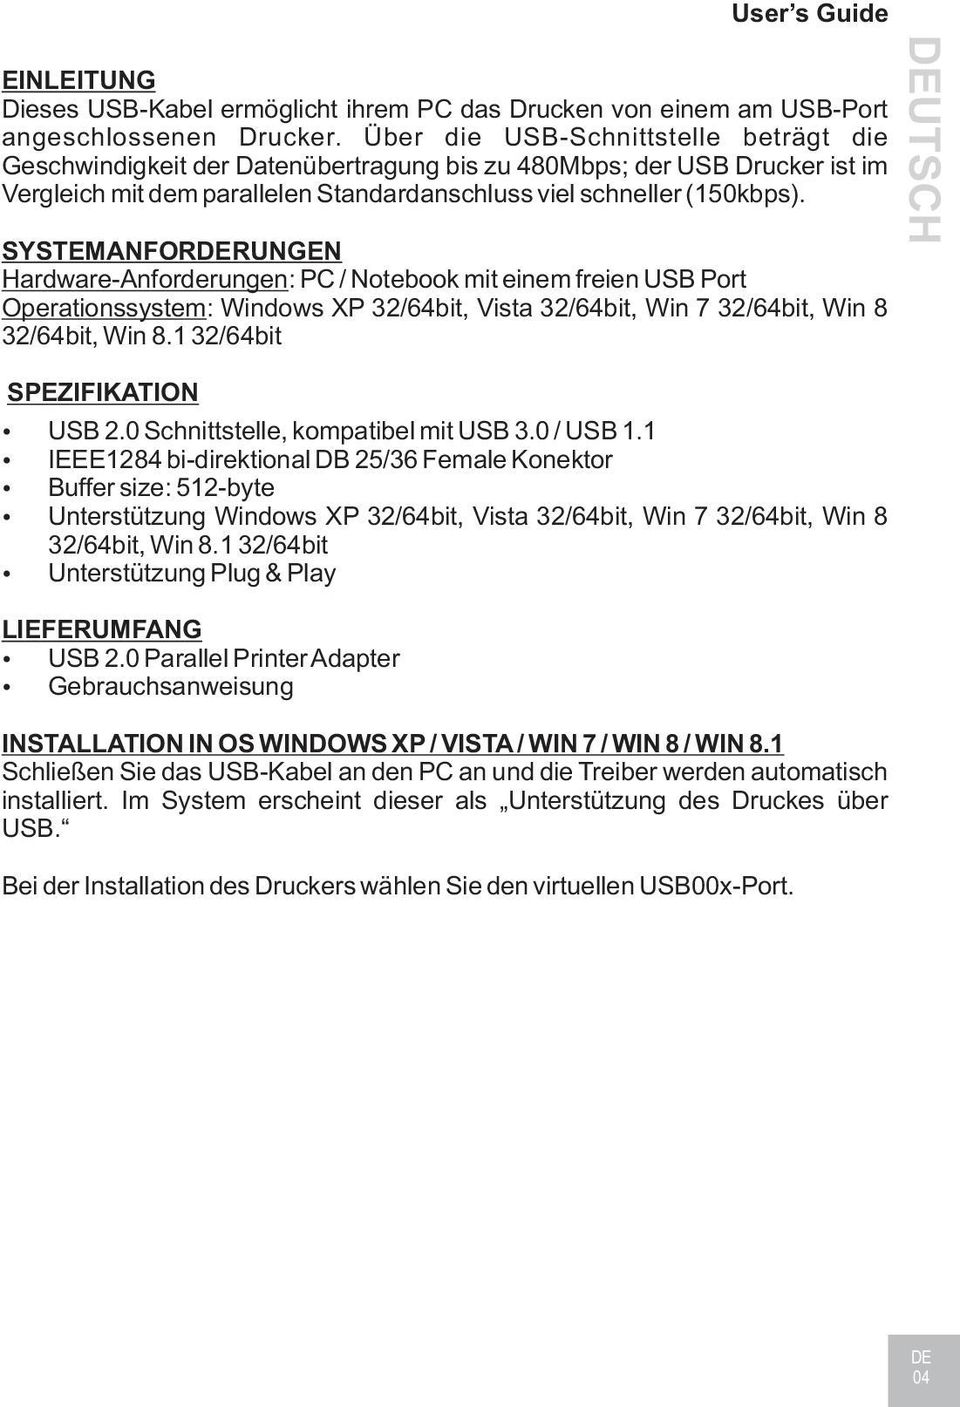 SYSTEMANFORDERUNGEN Hardware-Anforderungen: PC / Notebook mit einem freien USB Port Operationssystem: Windows XP 32/64bit, Vista 32/64bit, Win 7 32/64bit, Win 8!SPEZIFIKATION USB 2.